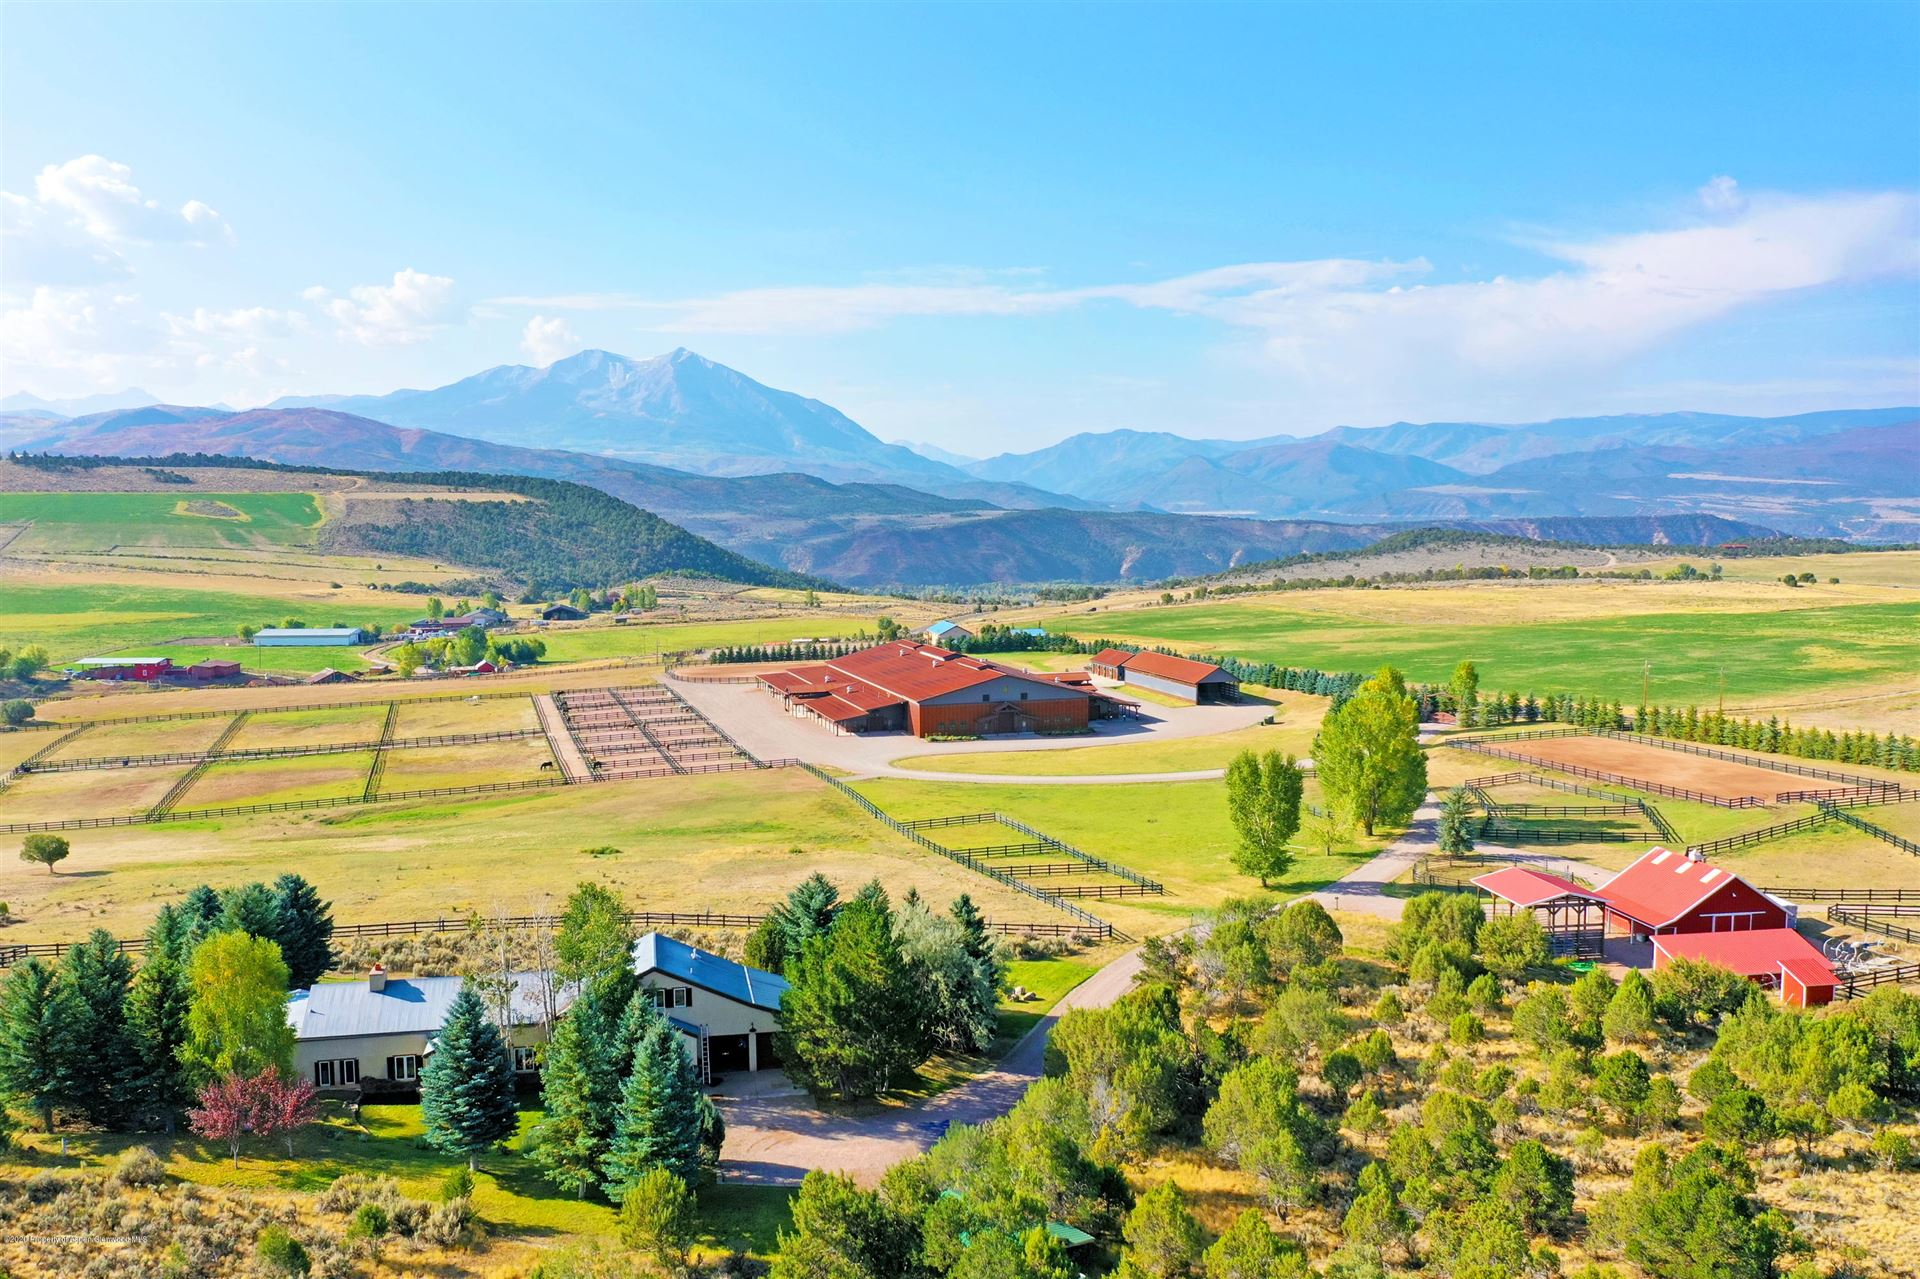 5644 County Road 100                                                                               Carbondale                                                                      , CO - $16,999,000